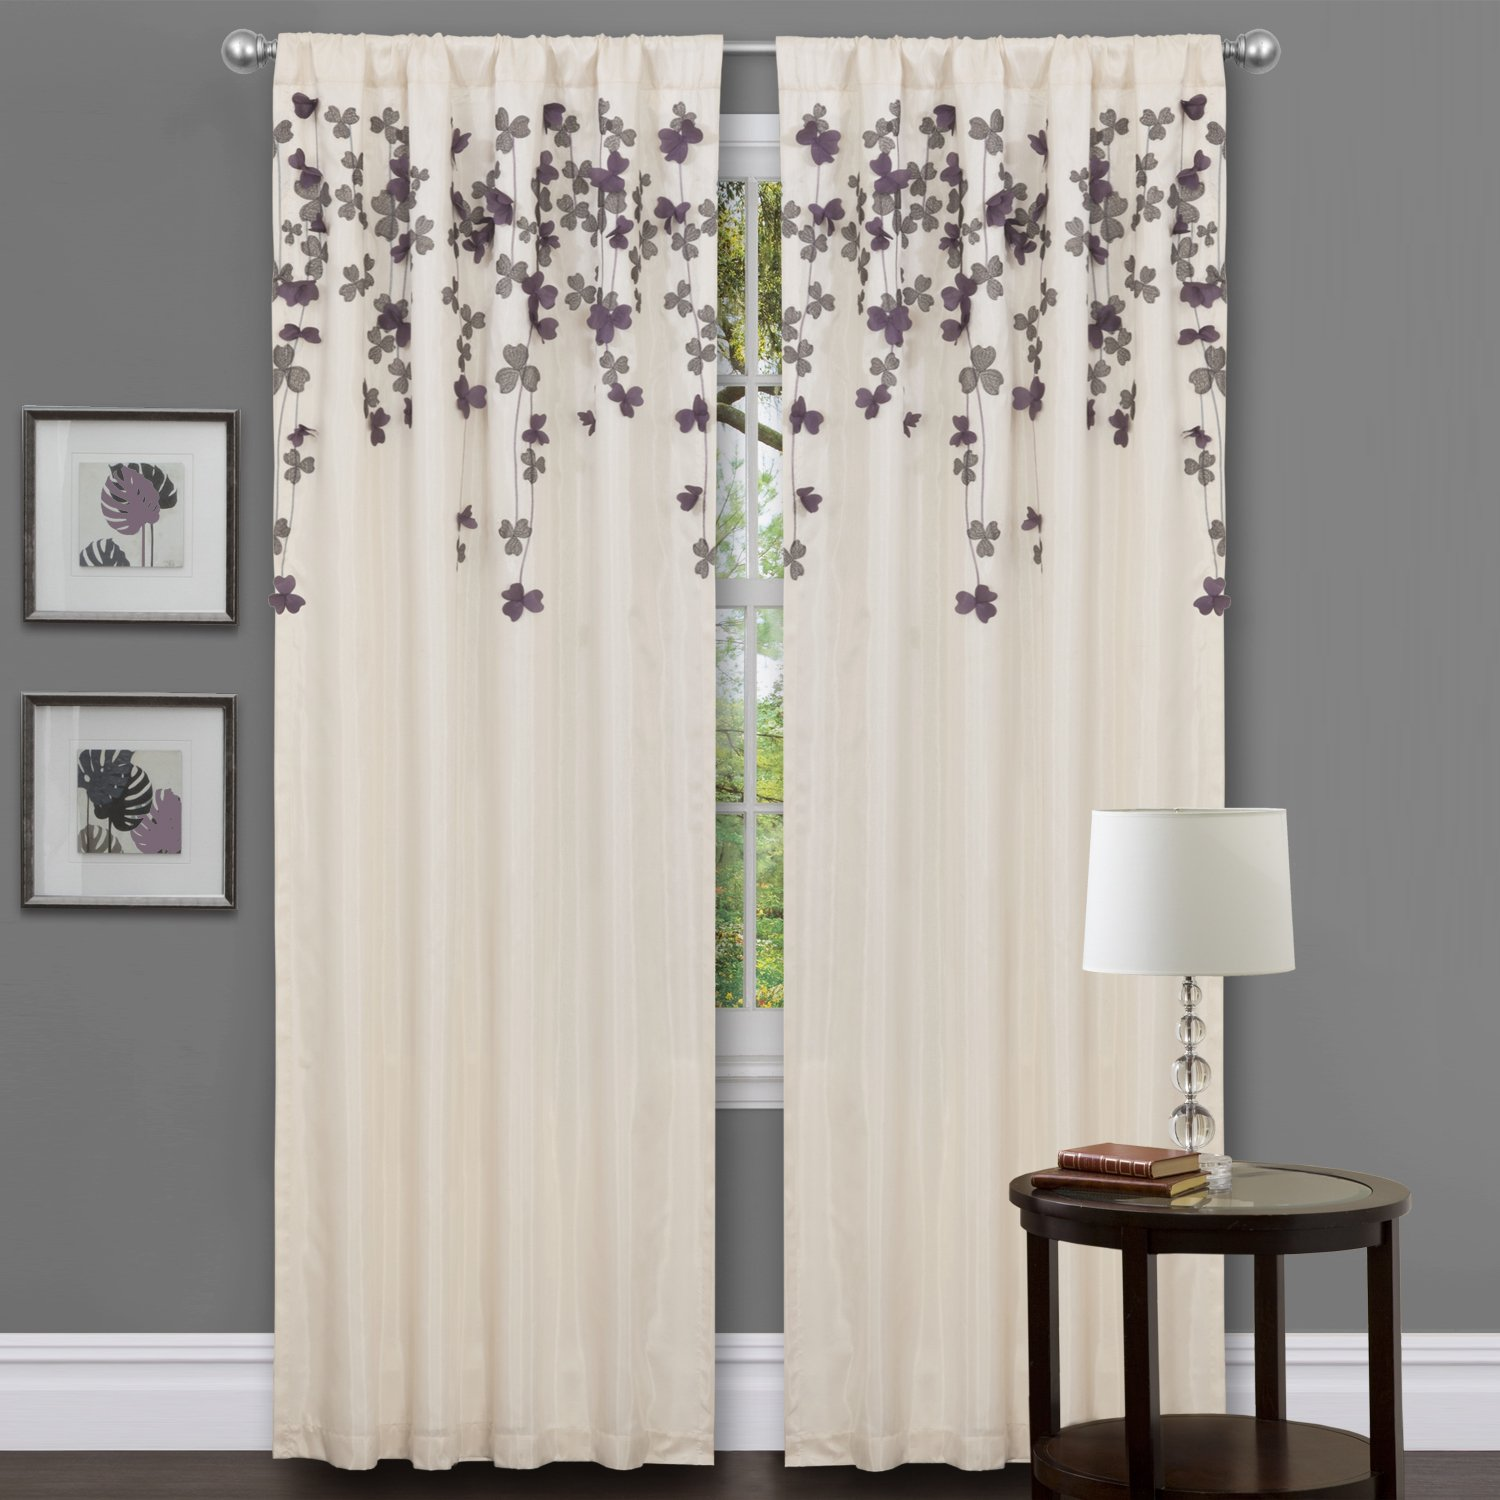 Lush Decor Flower Drop Curtain Panel, Purple